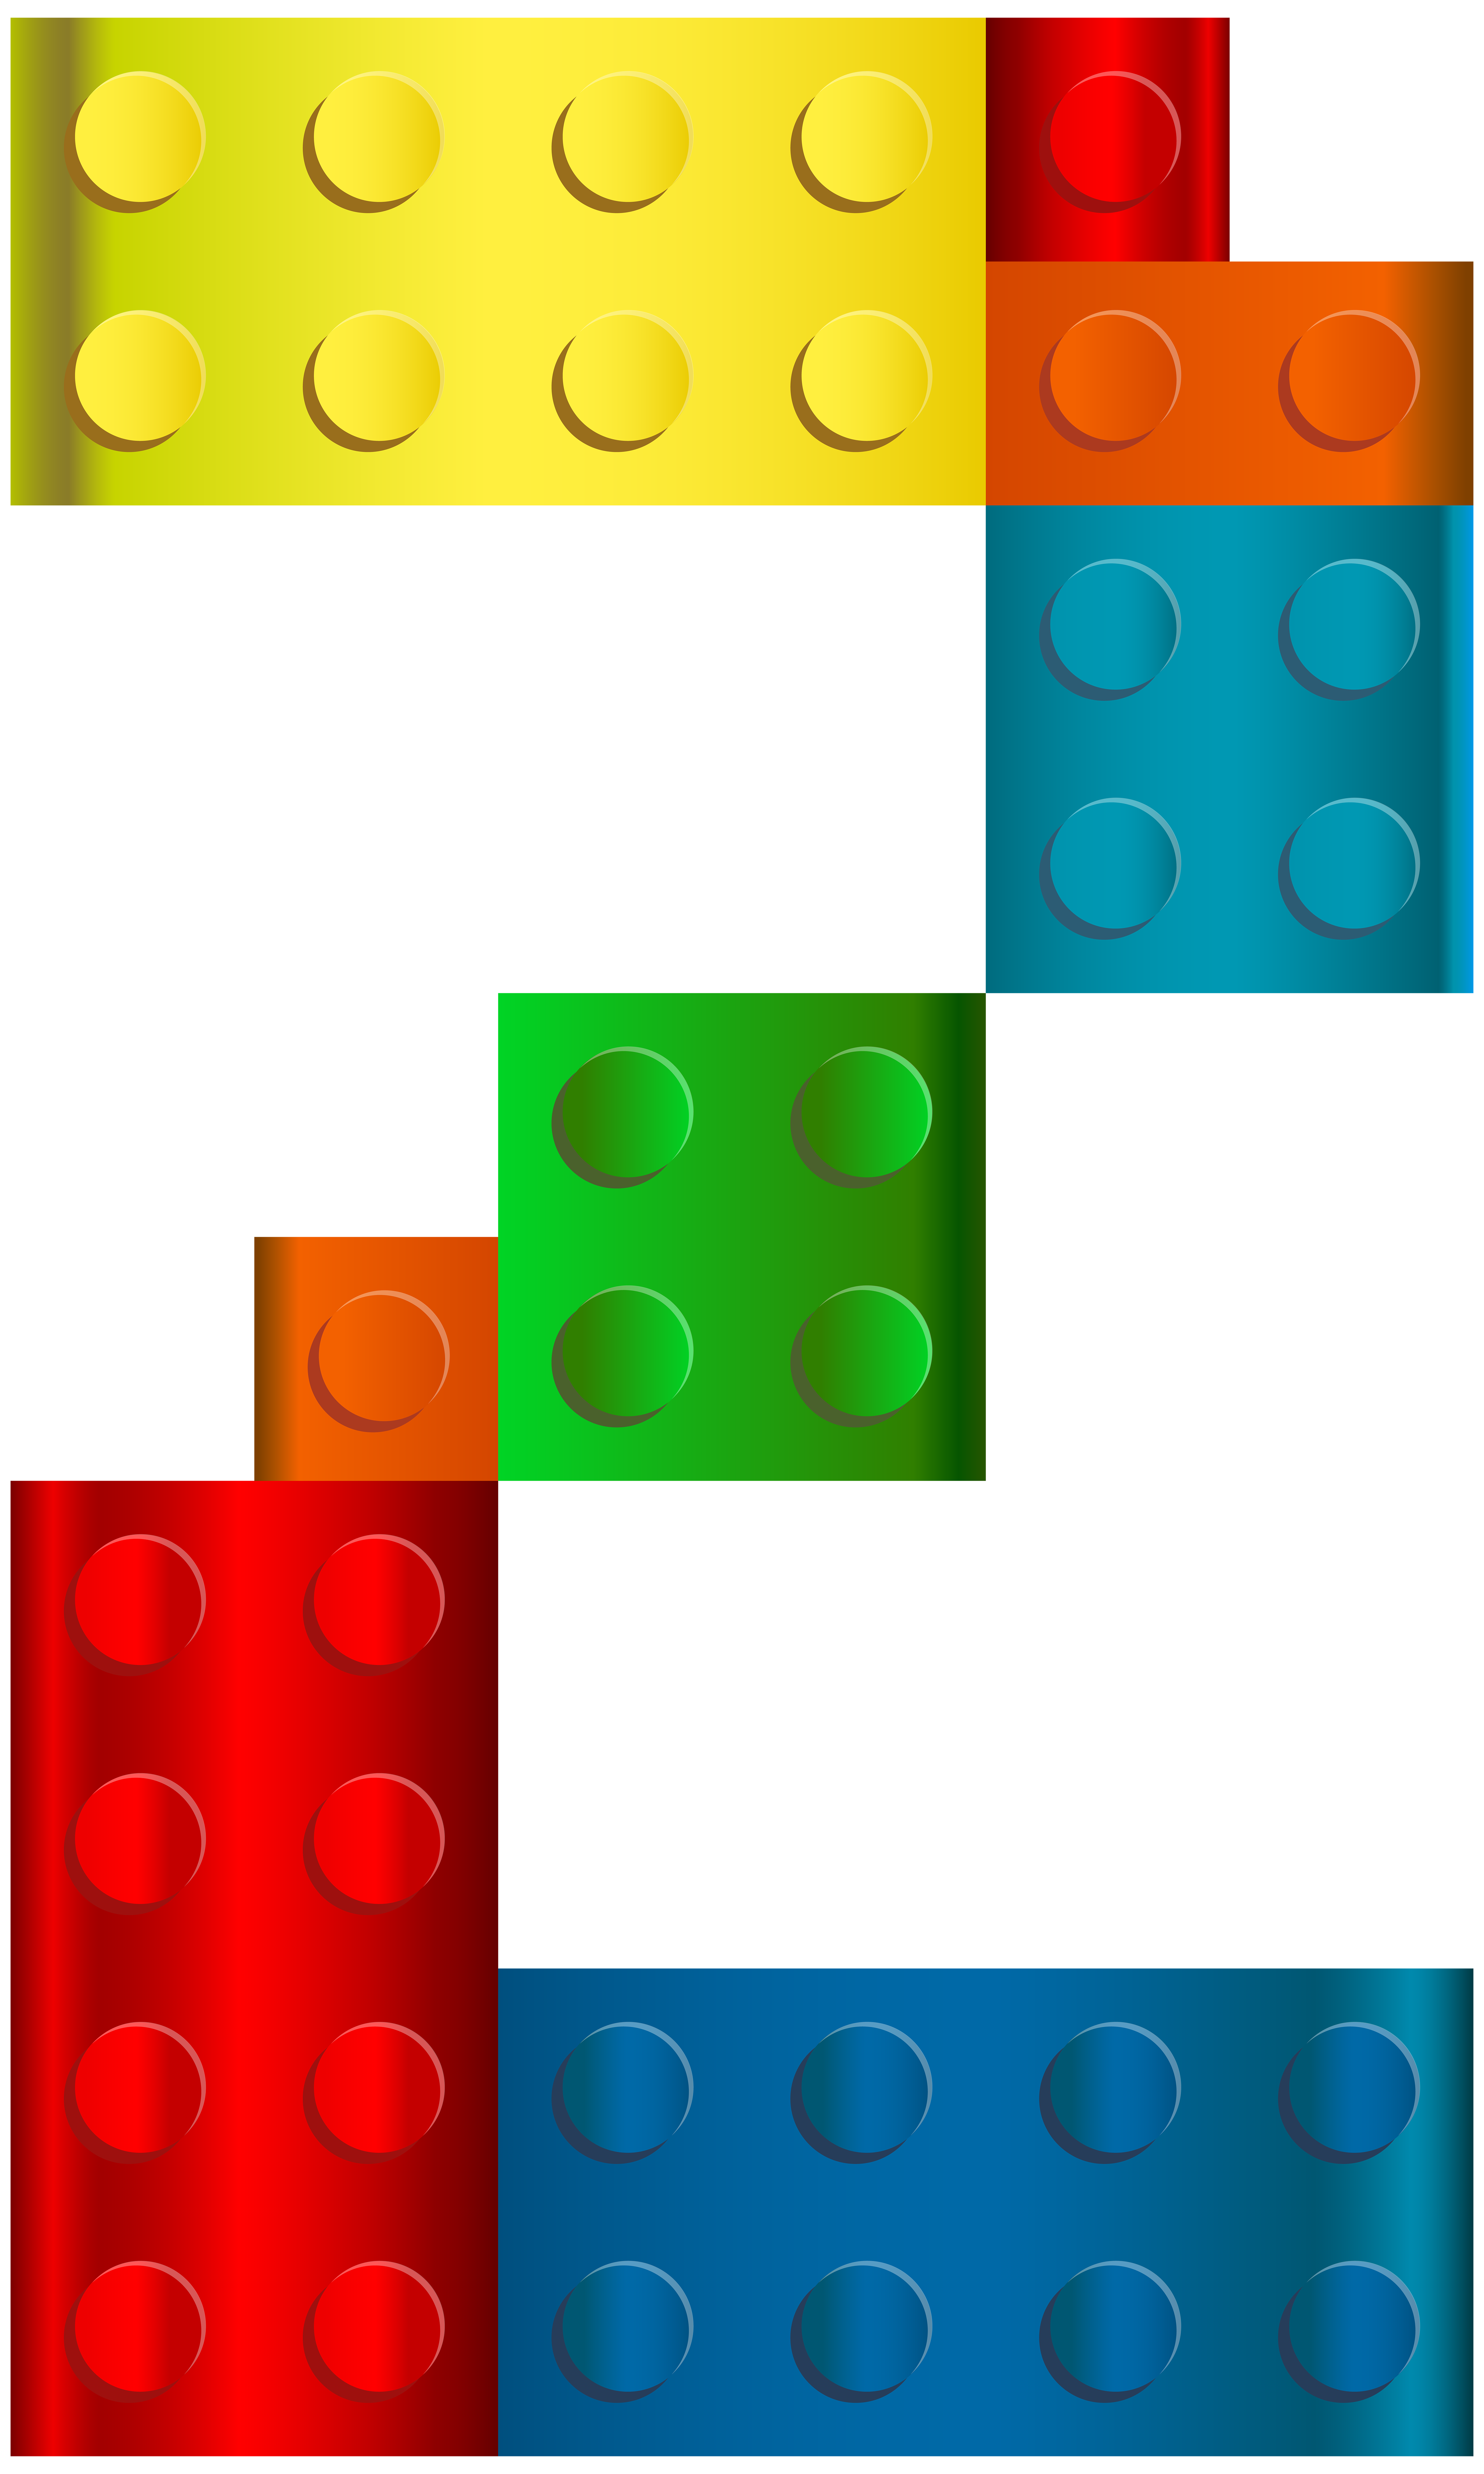 4800x8000 Lego Number Two Png Transparent Clip Art Imageu200b Gallery